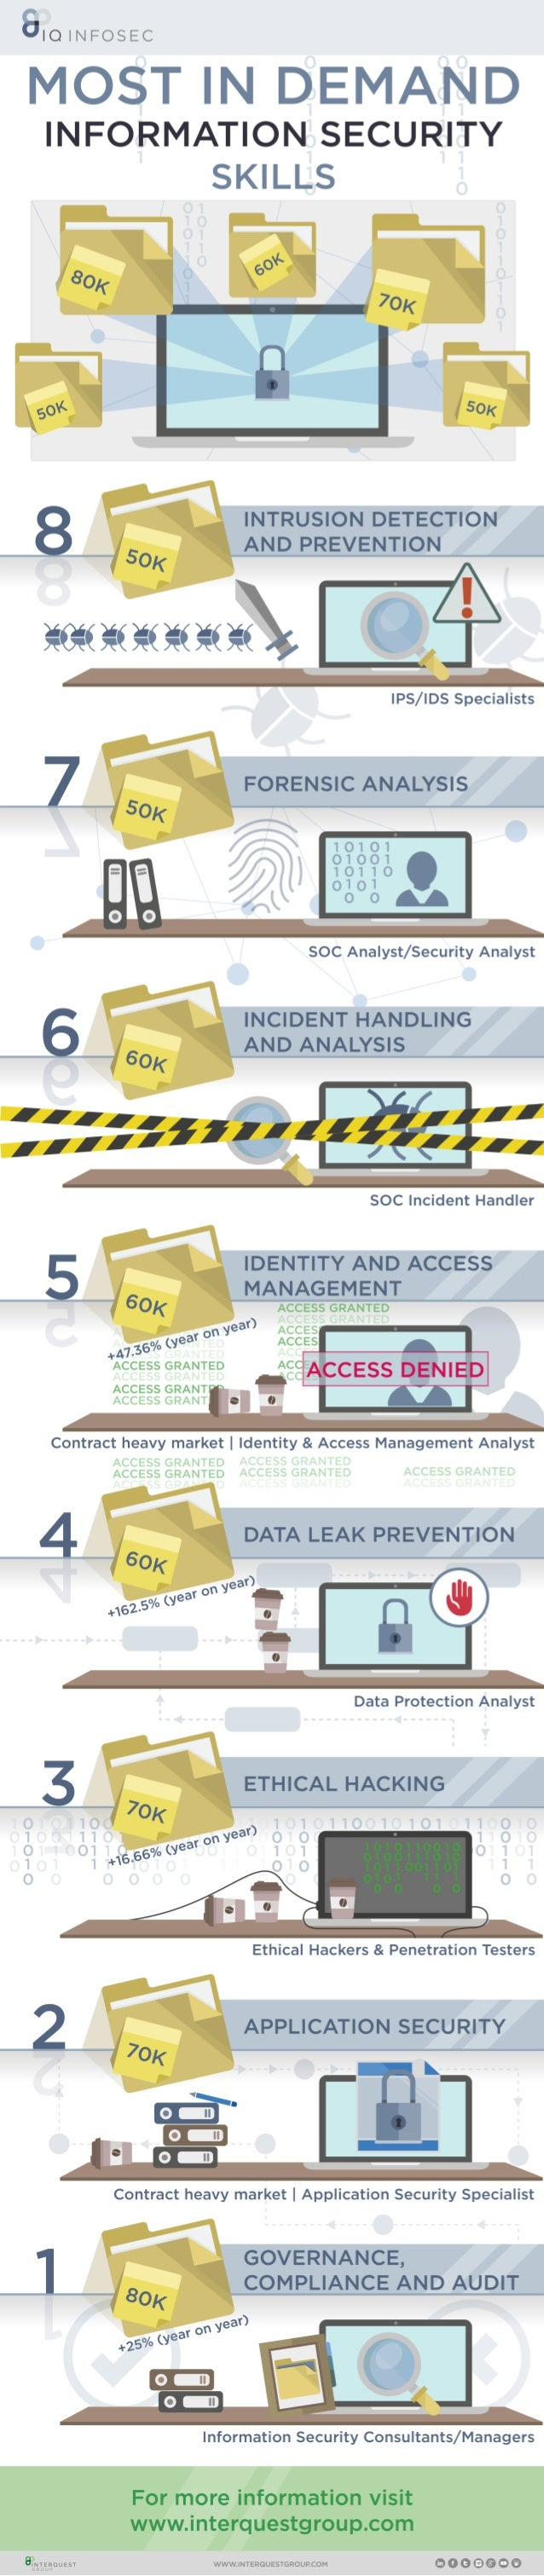 Most In Demand Information Security Skills